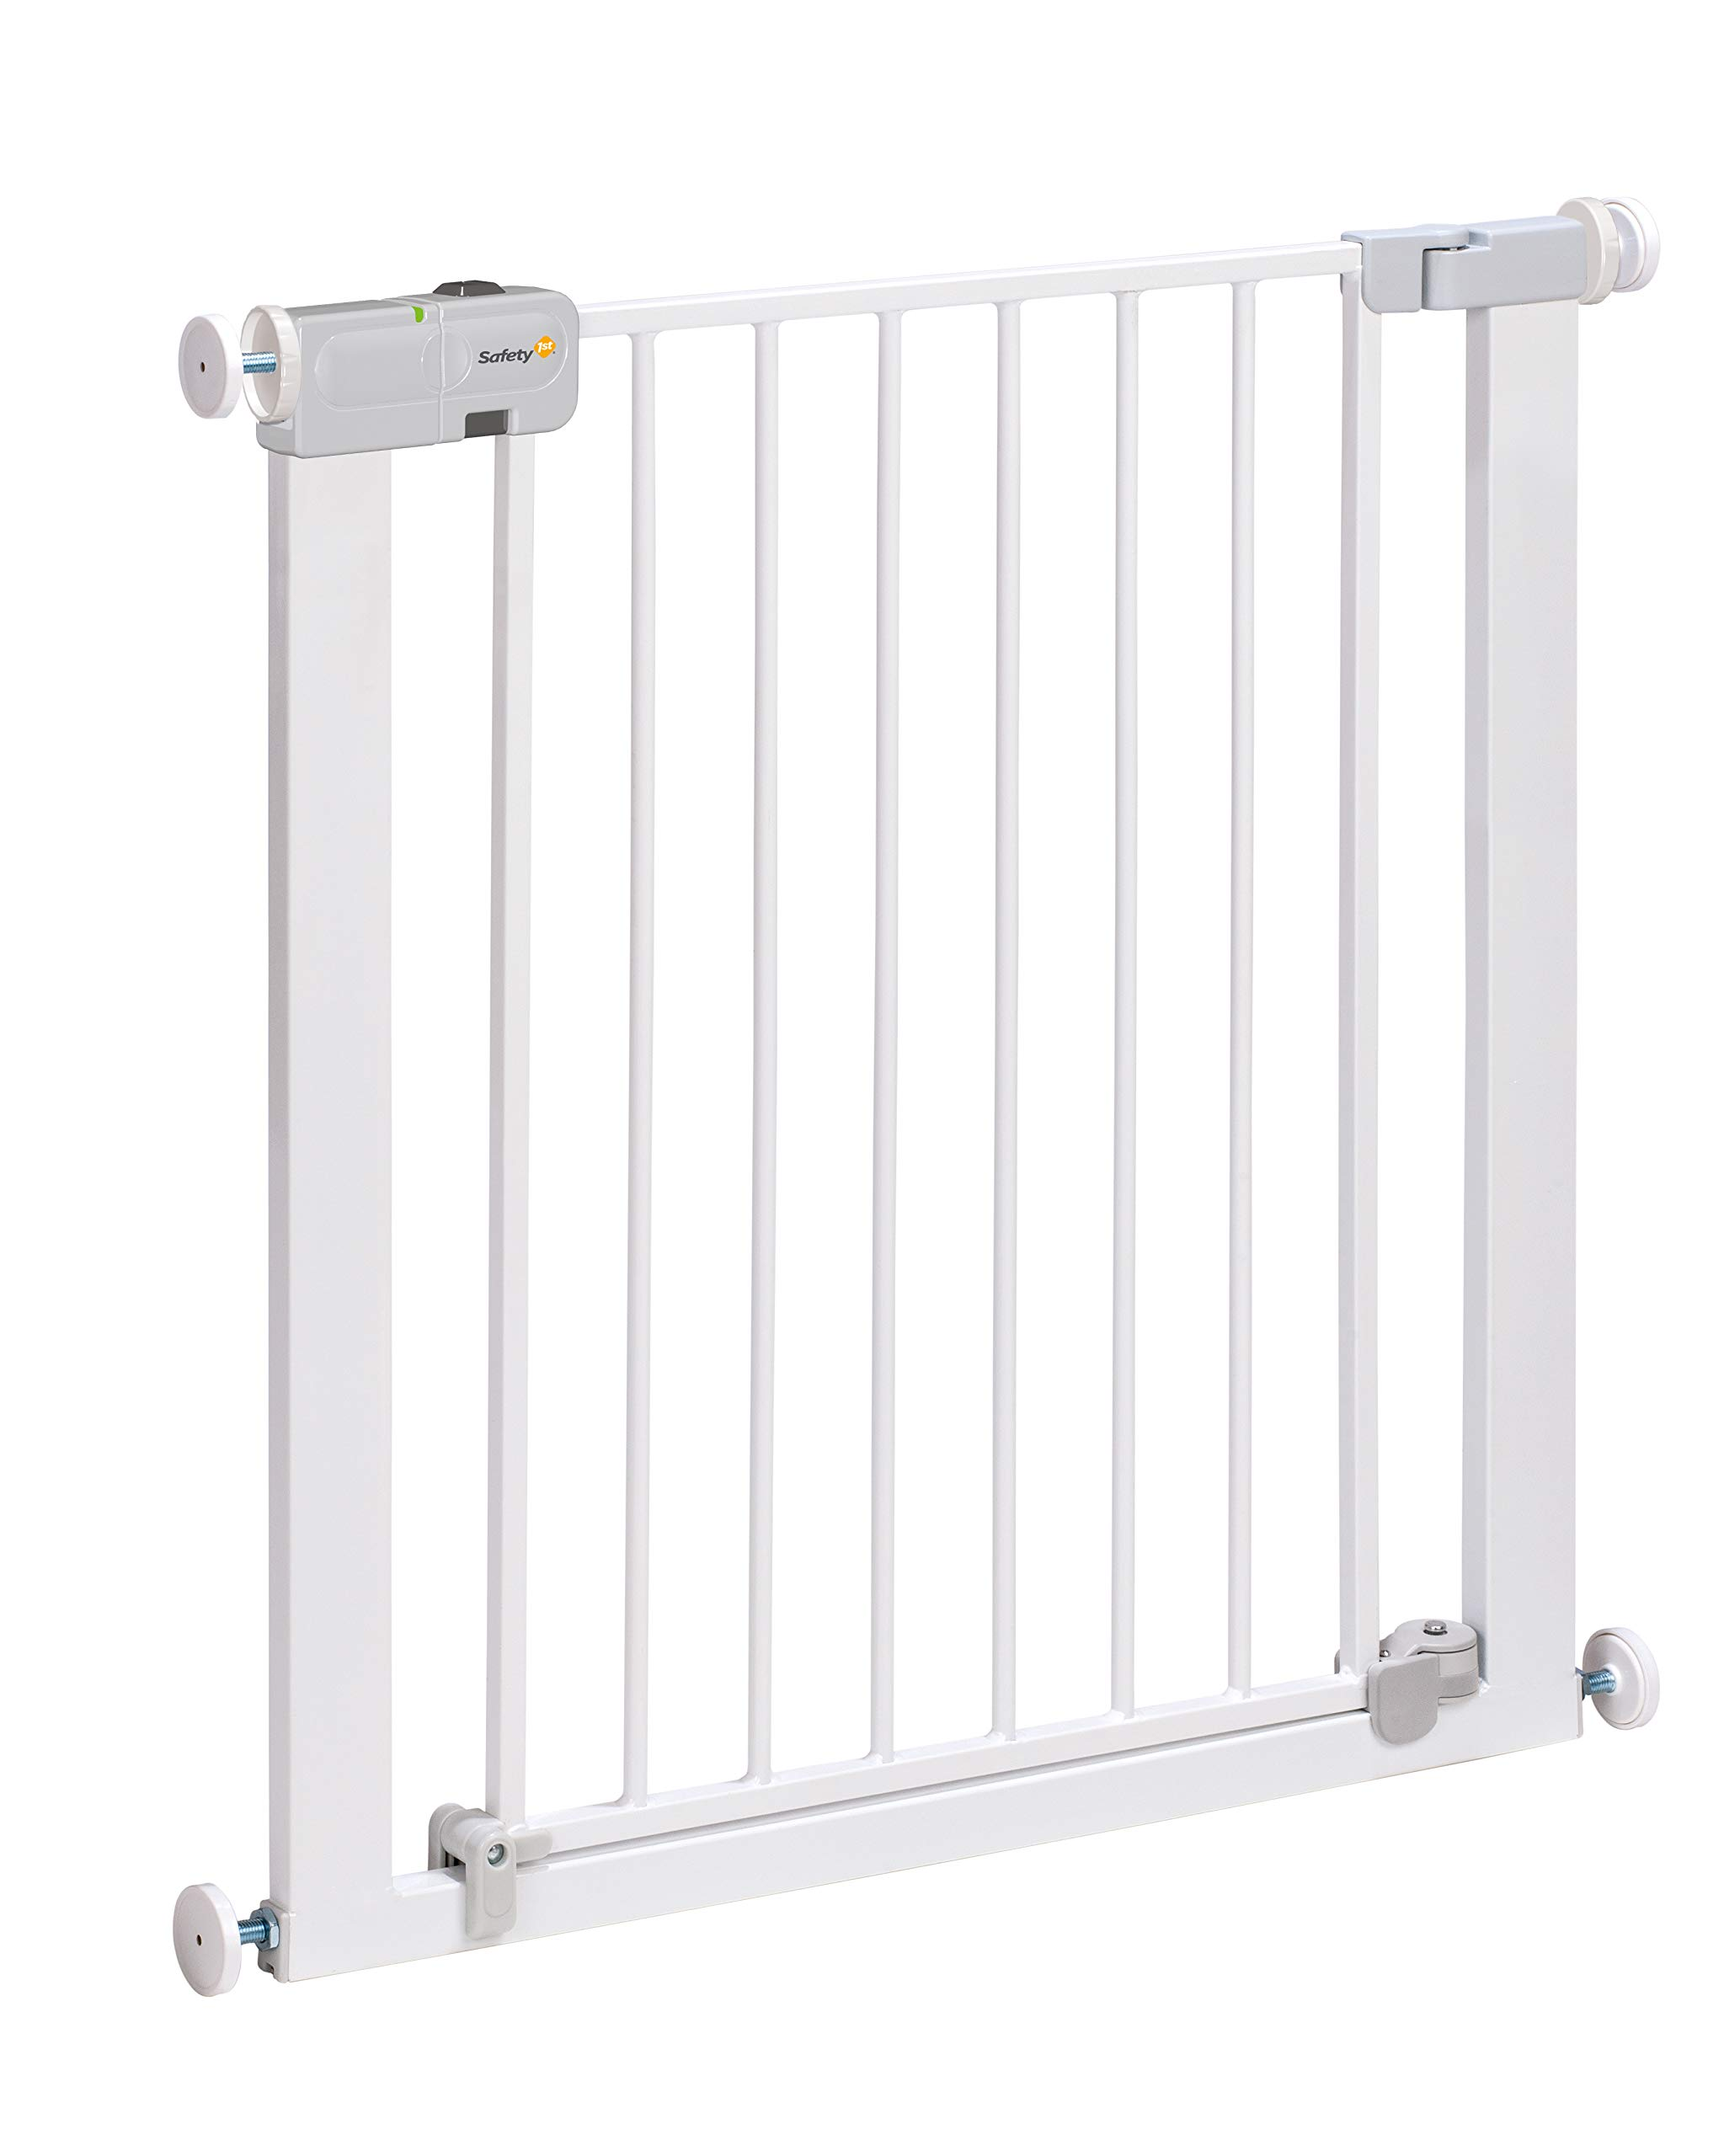 """Safety 1st Secure Tech Auto Close Metal Gate, White Safety 1st One handed opening """"true"""" auto-closing whatever the opening amplitude U-shaped frame with 4 pressure points provides solid fit and doesn't require drilling Secure tech indicator shows the gate is safely locked into place 1"""